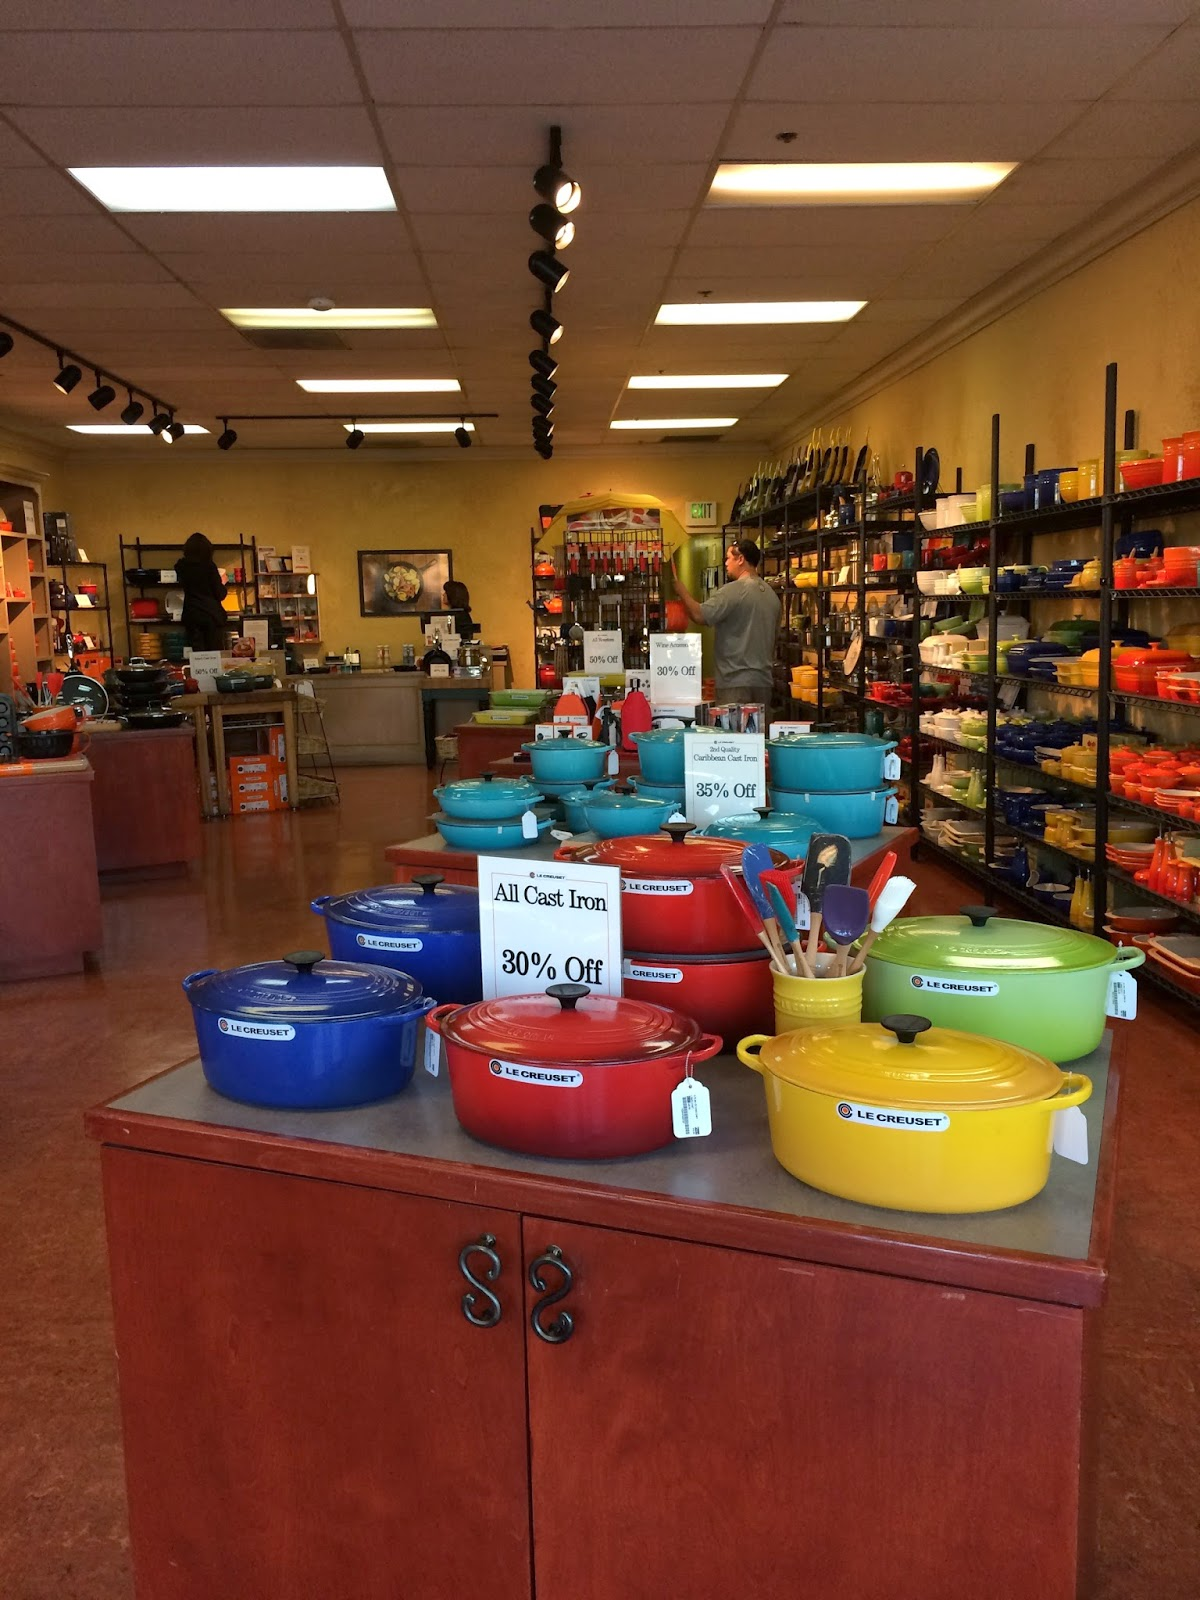 I Decided To Invest In A Le Creuset The Price Tag Lot Over 300 00 Wherever You Look Fortunately We Have Outlet